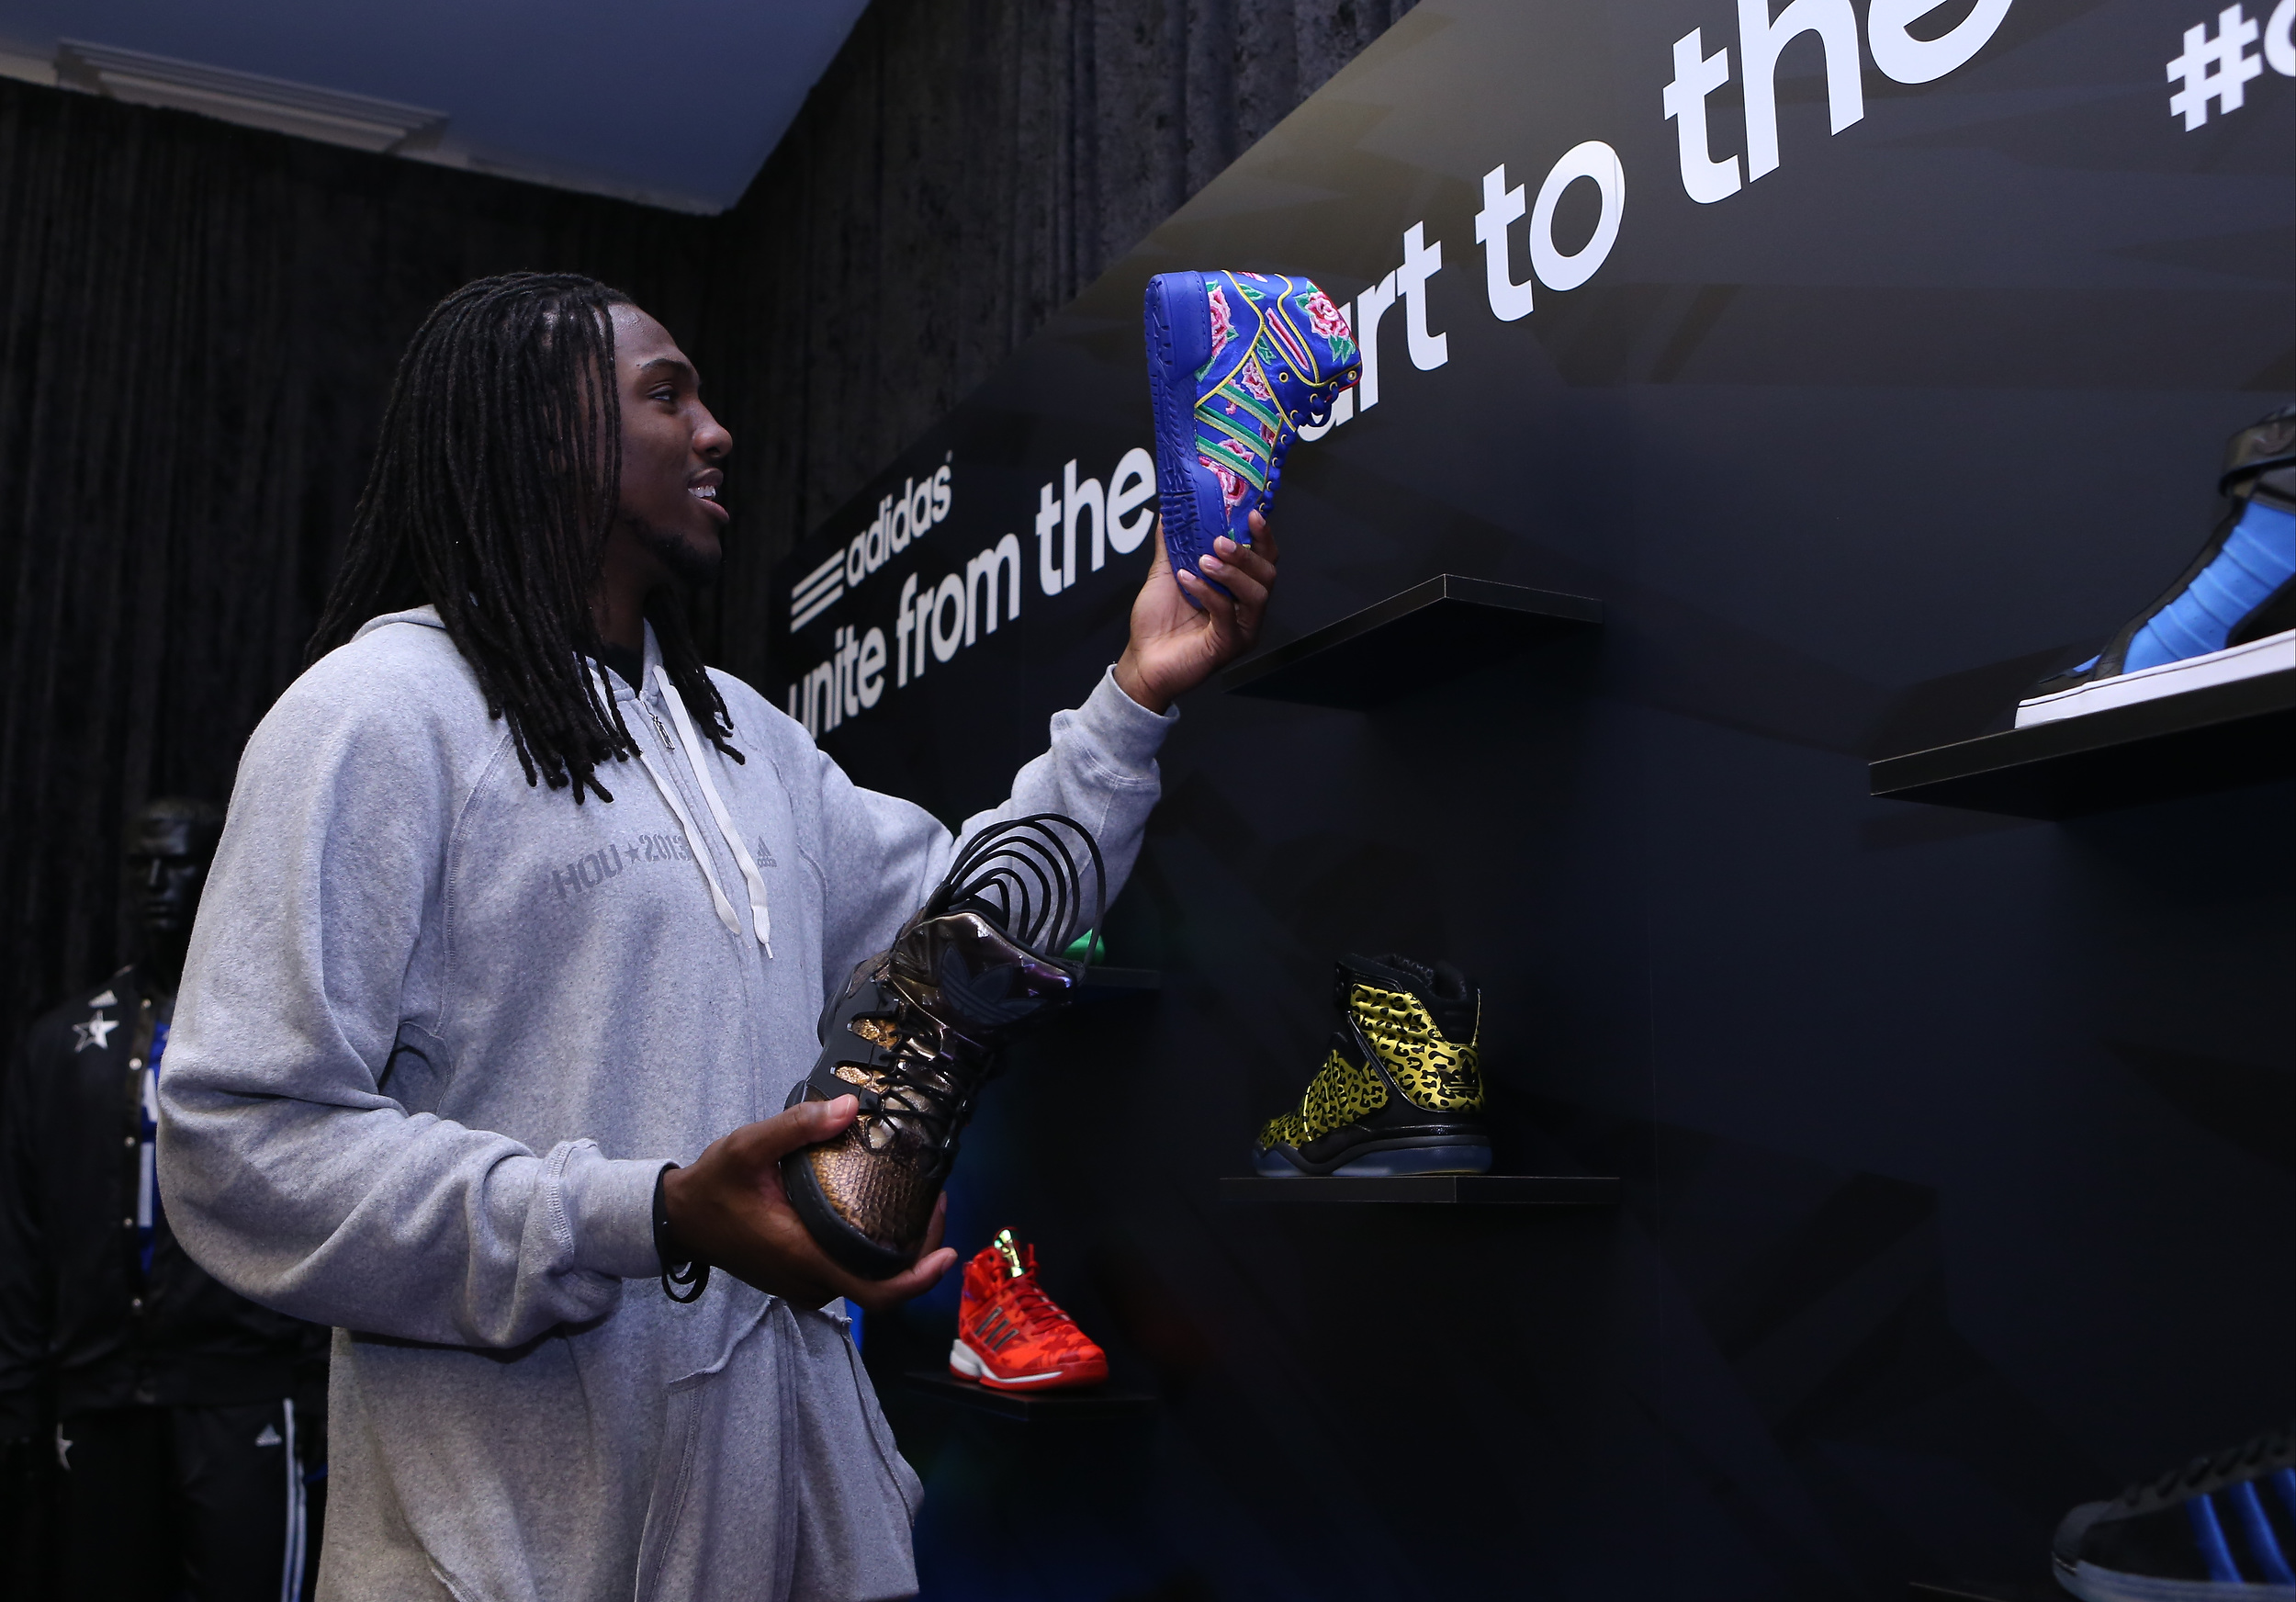 dwight-howard-jrue-holiday-ricky-rubio-and-others-celebrate-nba-all-star-weekend-4